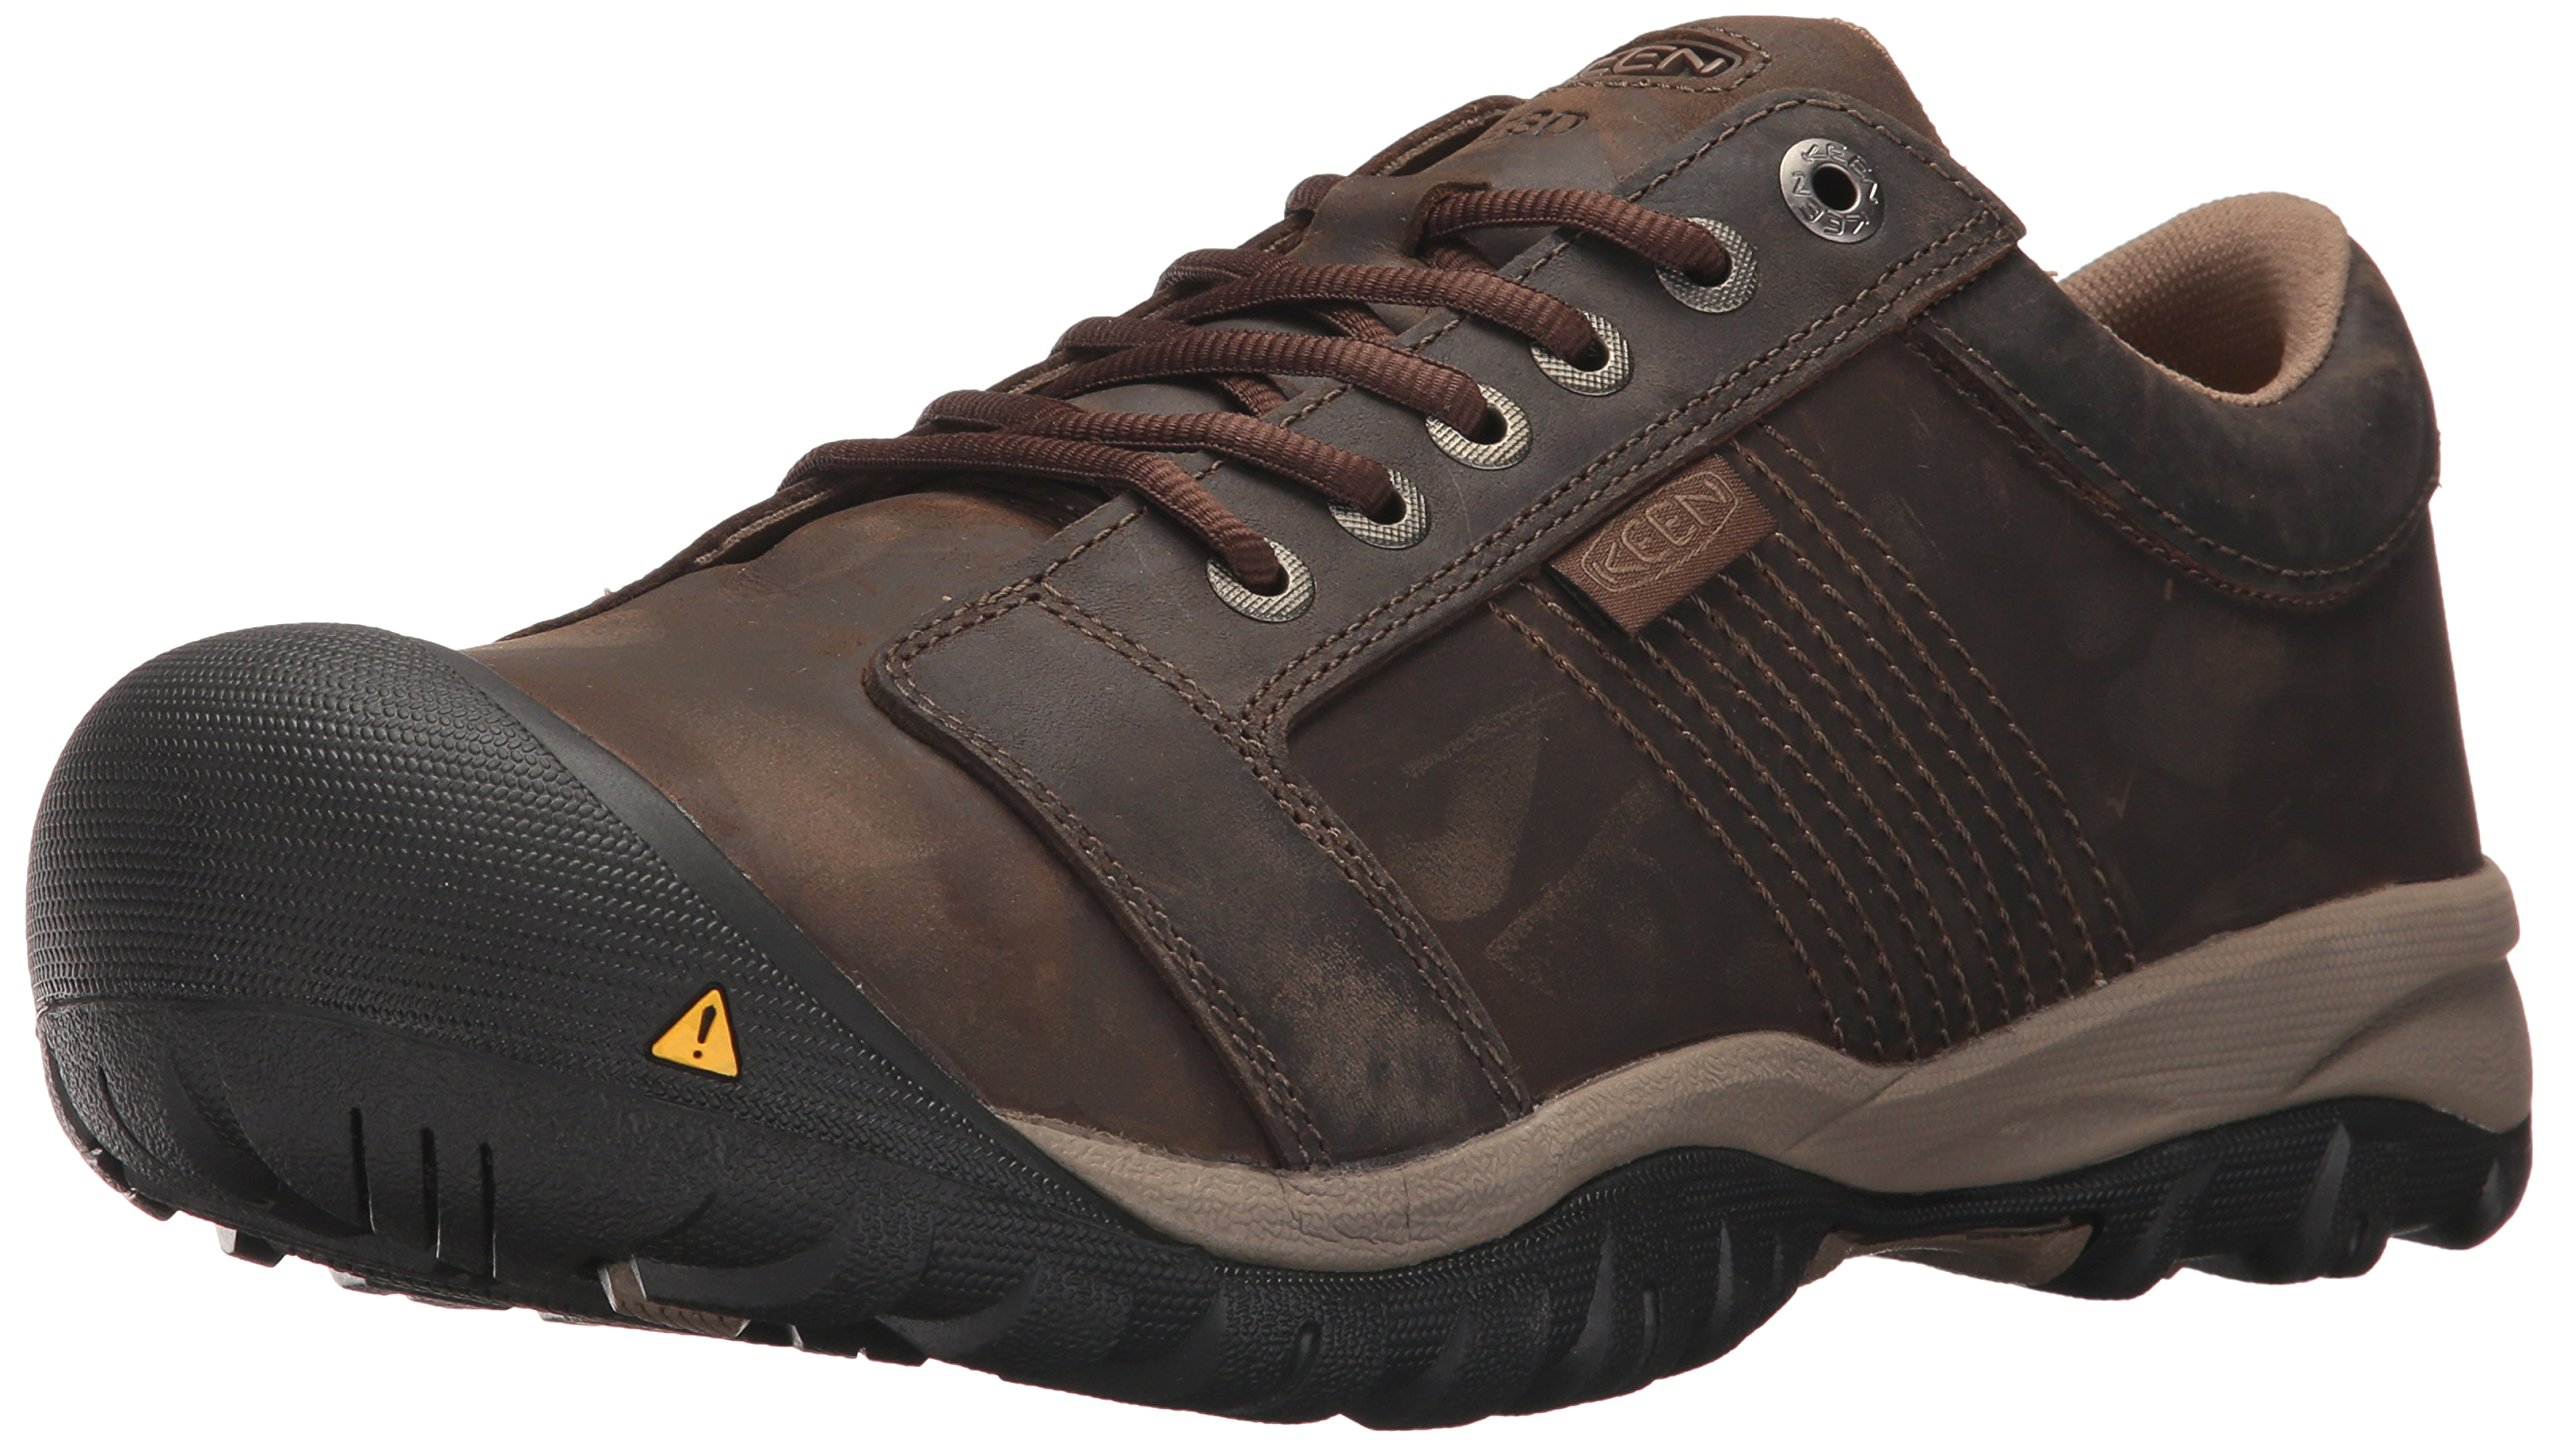 KEEN Utility Men's LA Conner at ESD Industrial & Construction Shoe